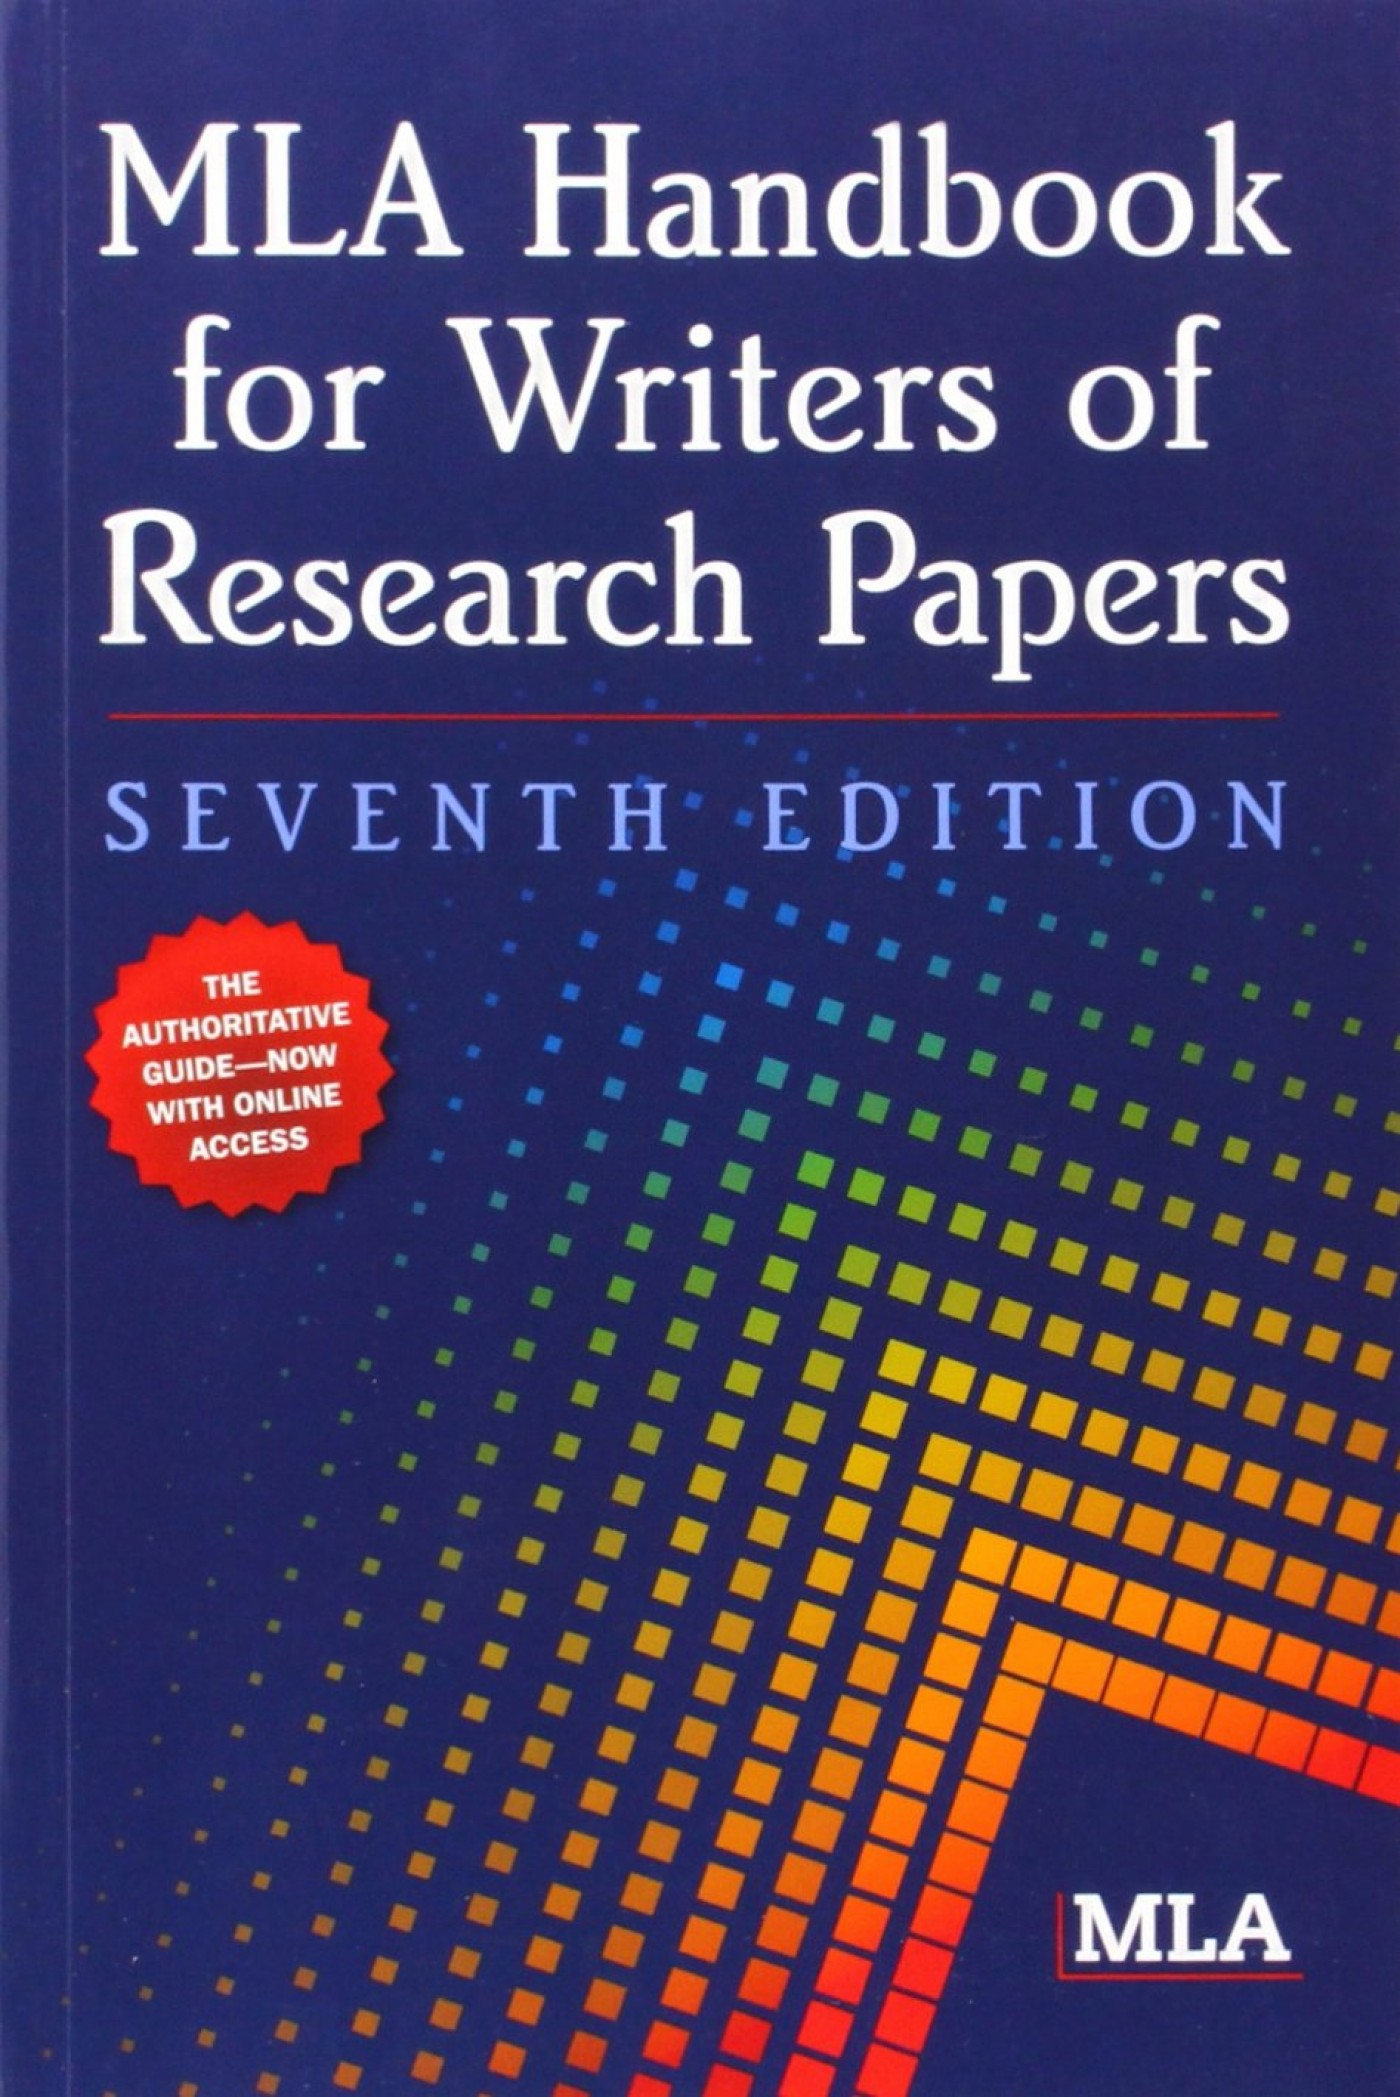 003 Mla Handbook For Writing Researchs Pdf 71lknvqs6gl Beautiful Research Papers Writers Of 5th Edition 7th Free Download 1400